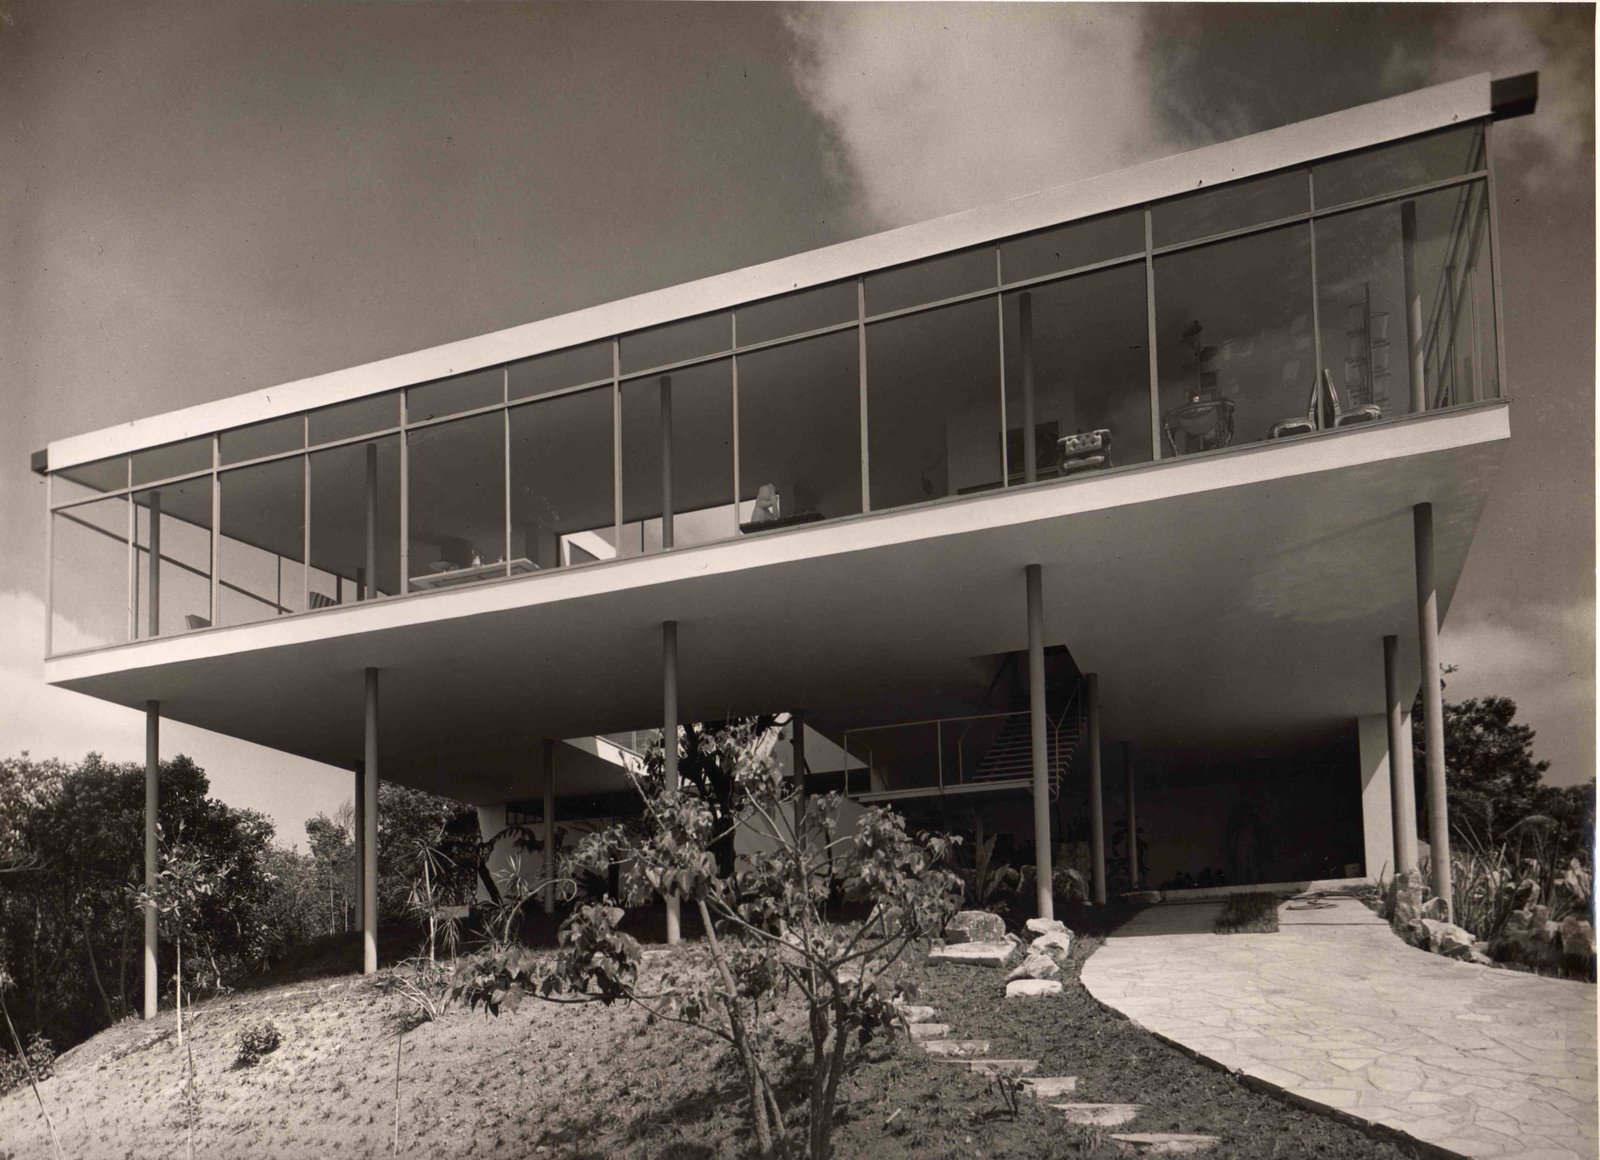 Outdoor The Casa de vidro, shortly after its completion.  Photo 4 of 10 in Transformers of the Modern House: Albert Frey and Lina Bo Bardi at the Palm Springs Art Museum